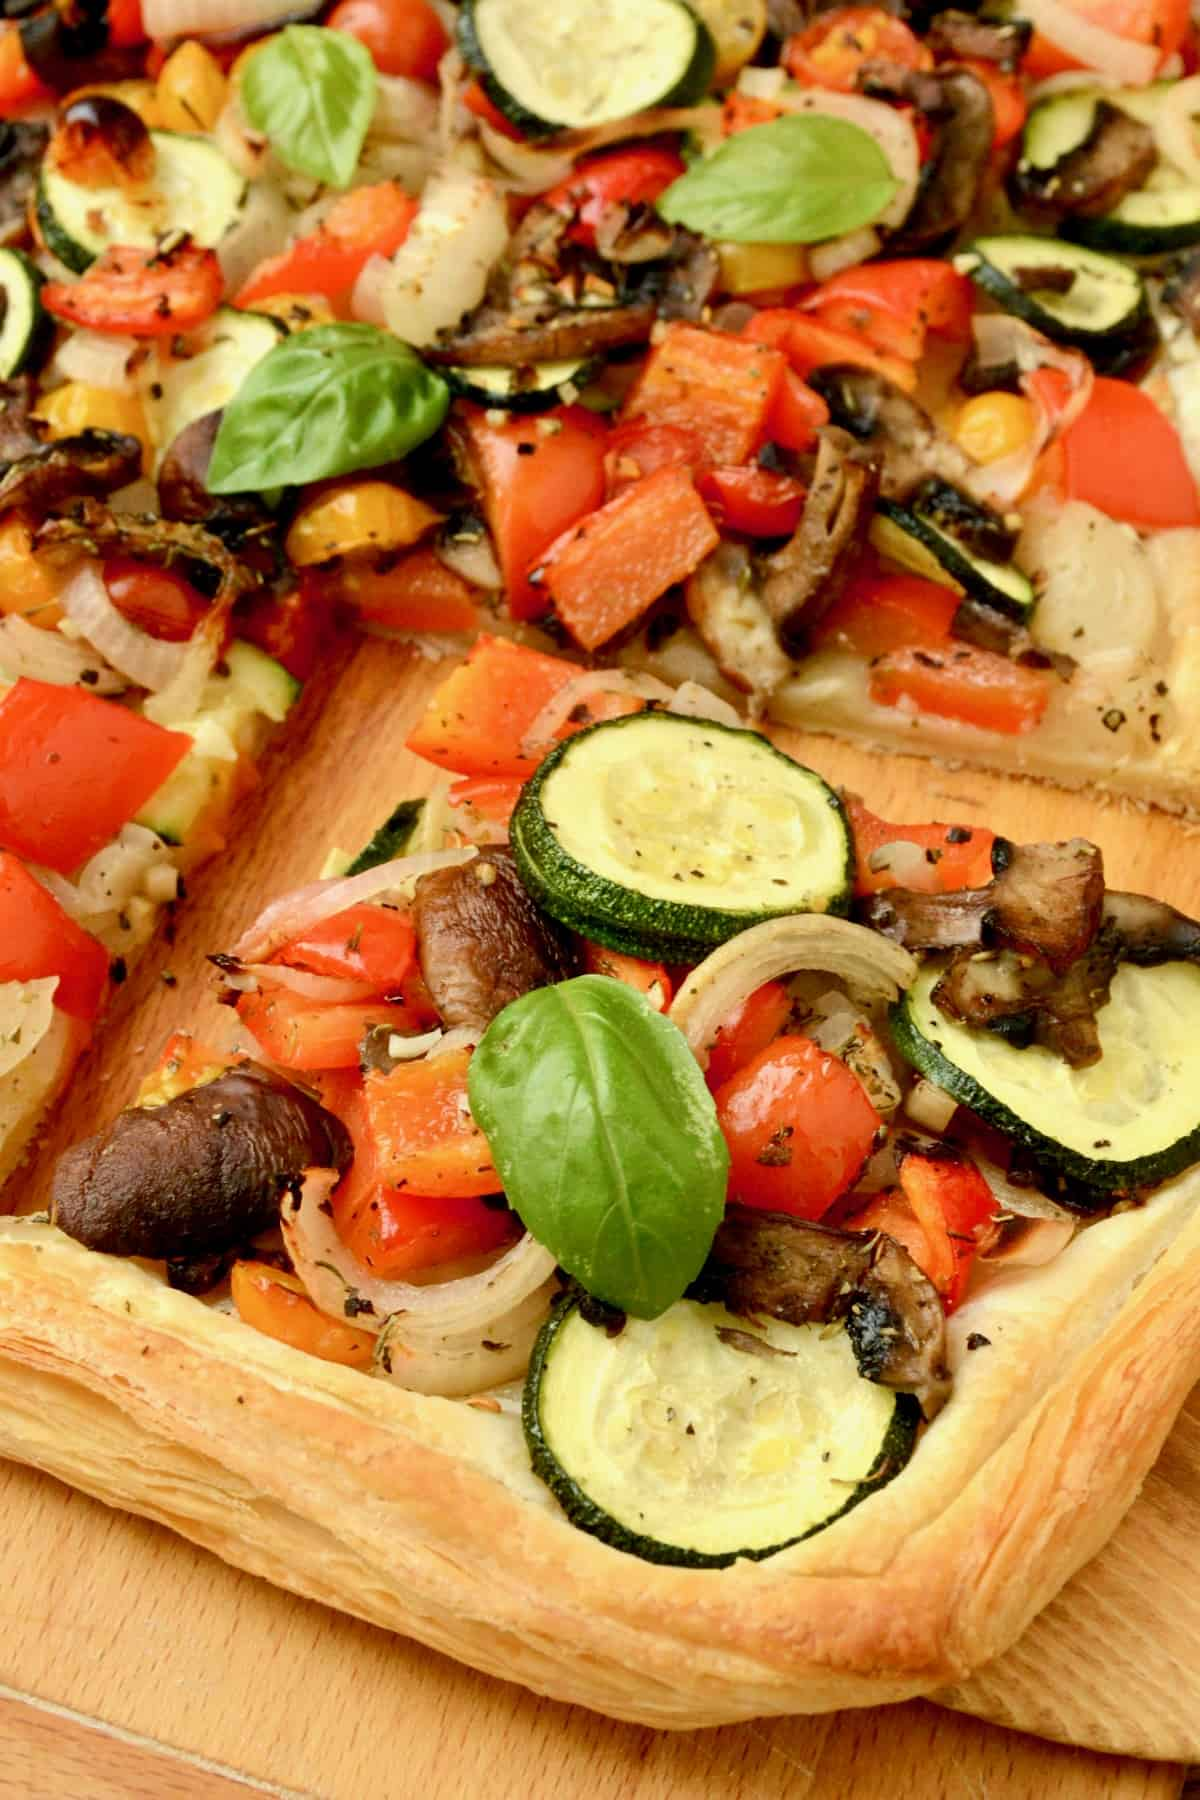 A slice of tart topped with zucchini, red pepper, onions, mushrooms.